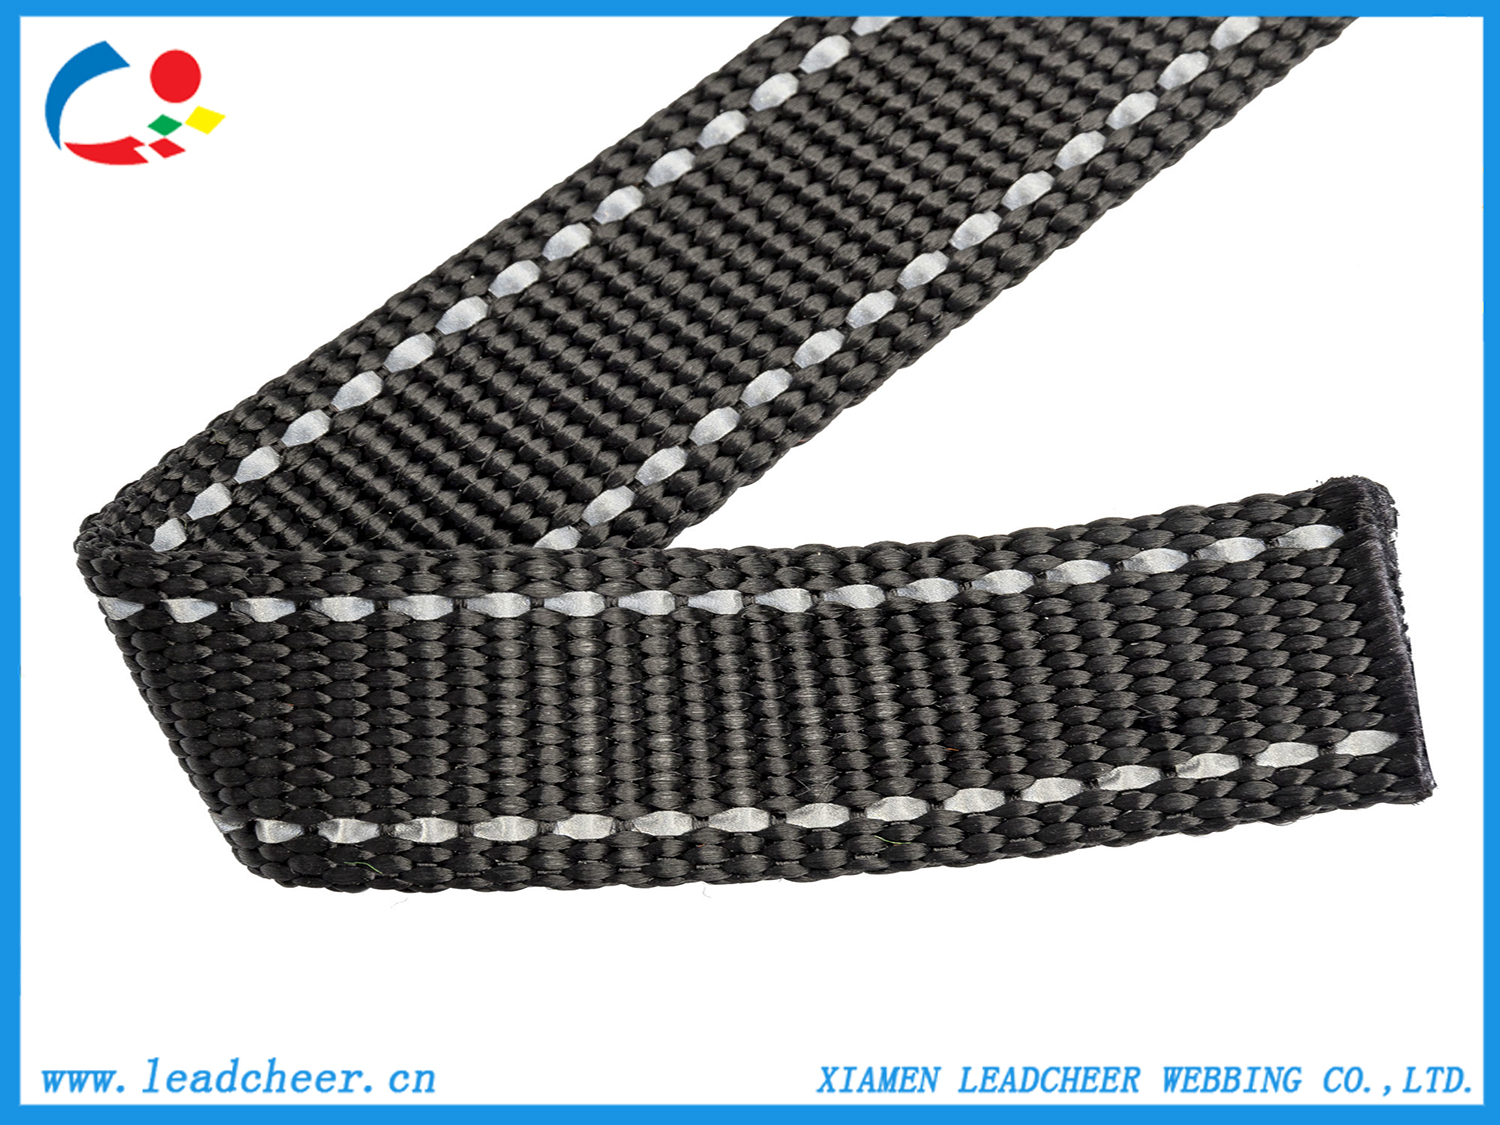 High quality Nylon Webbing with Two Reflective Strip for Pet Harness Quotes,China Nylon Webbing with Two Reflective Strip for Pet Harness Factory,Nylon Webbing with Two Reflective Strip for Pet Harness Purchasing